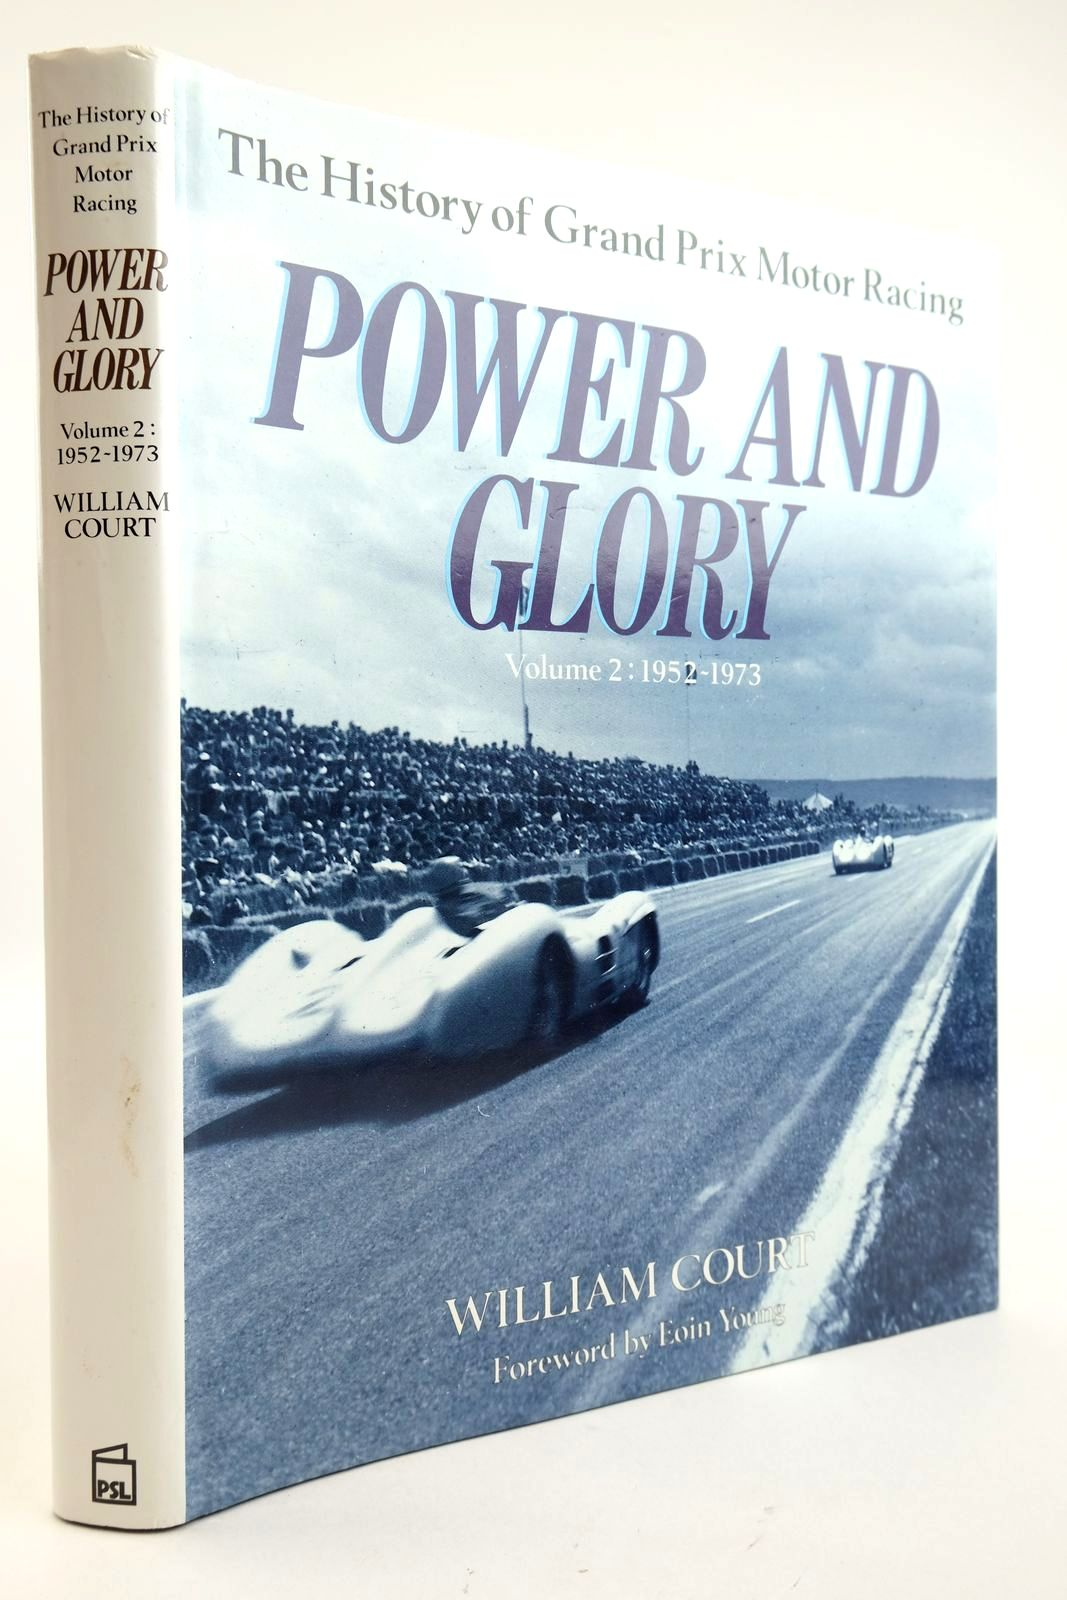 Photo of POWER AND GLORY THE HISTORY OF GRAND PRIX MOTOR RACING VOLUME 2 1952-1973 written by Court, William published by Patrick Stephens Limited (STOCK CODE: 2132916)  for sale by Stella & Rose's Books